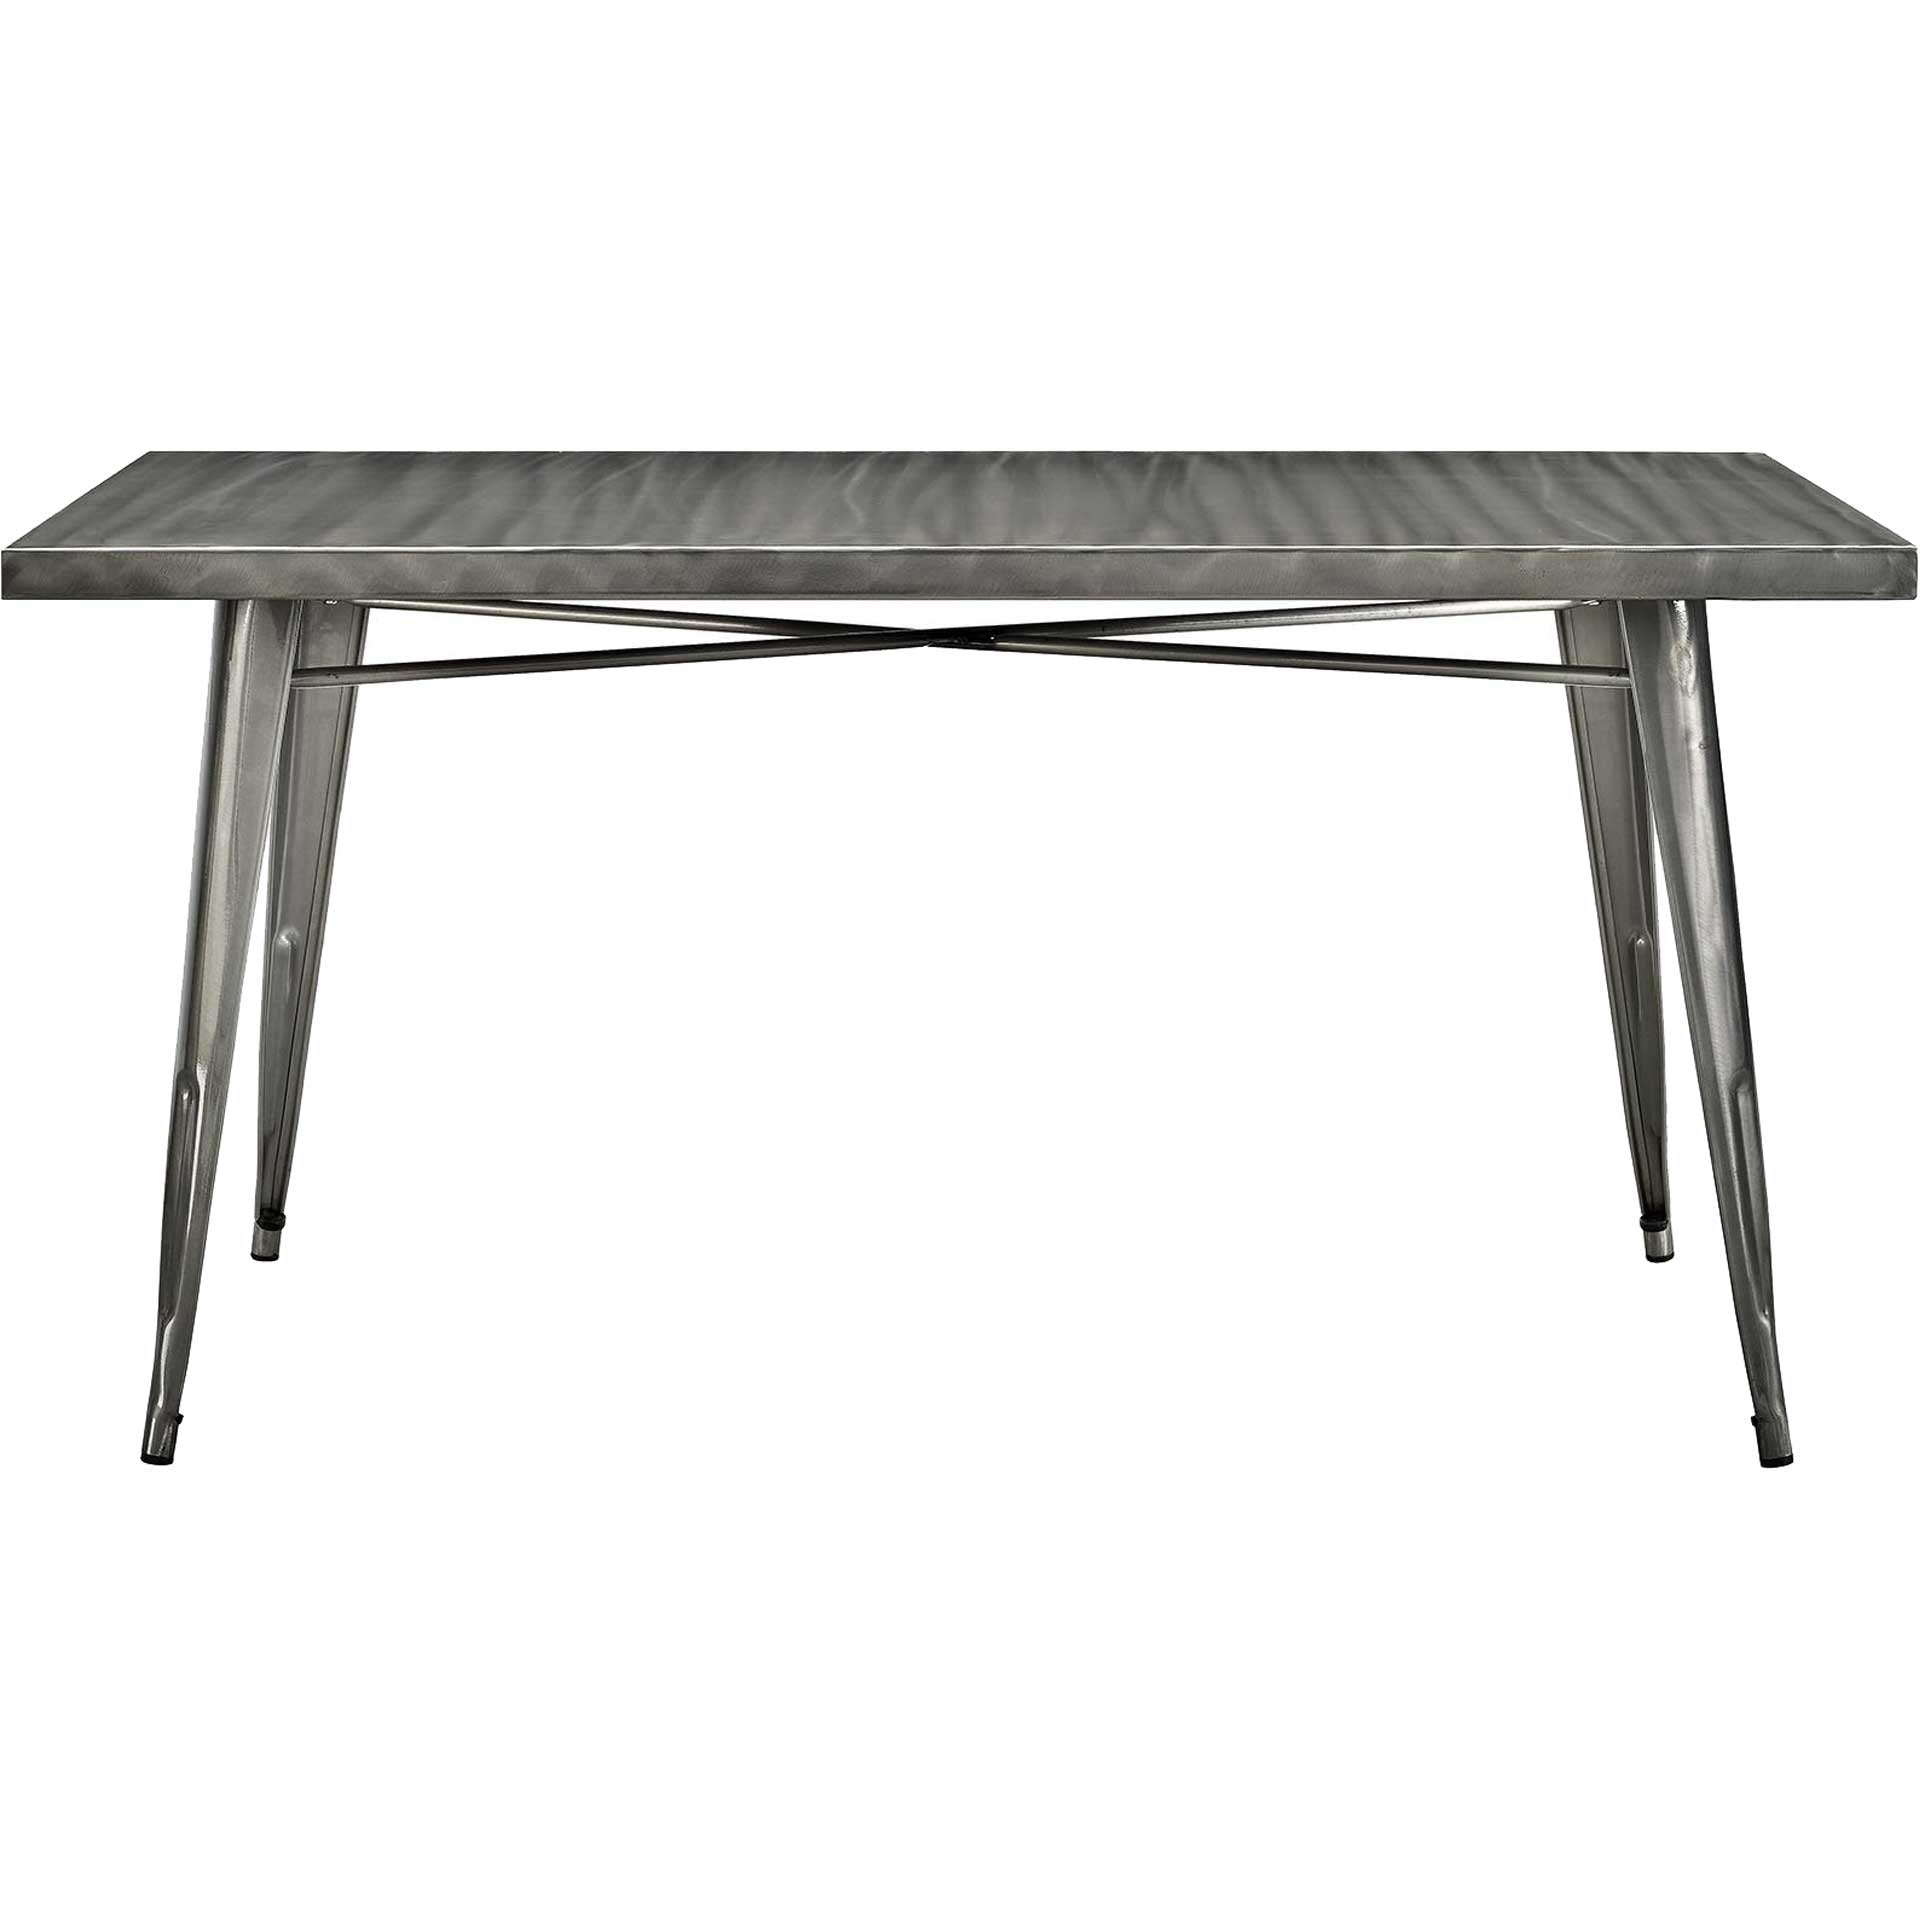 Anthropology Rectangle Dining Table Gunmetal